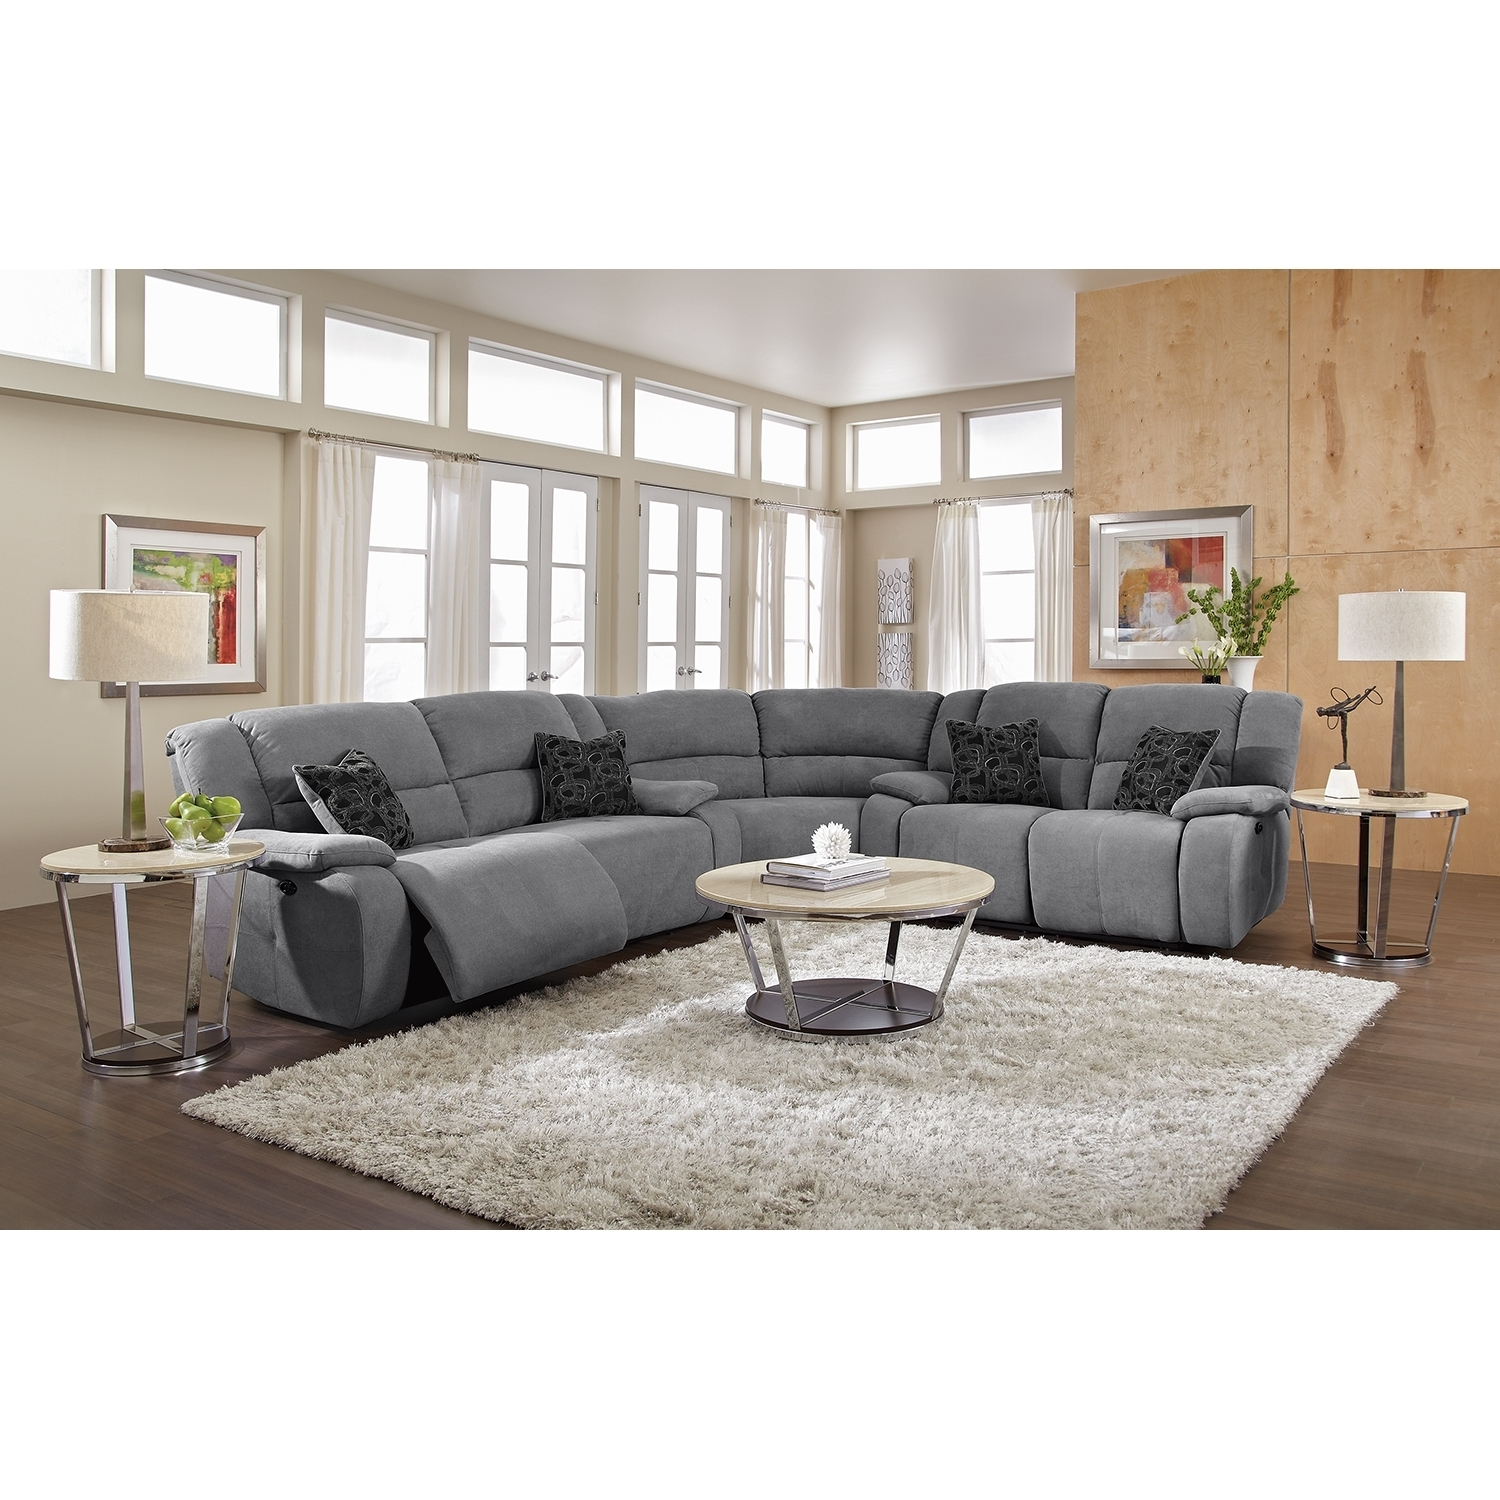 Most Current Reclining Sectional Leather Sectional Grey Sectional Sectionals Within Reclining Sectionals With Chaise (View 3 of 15)